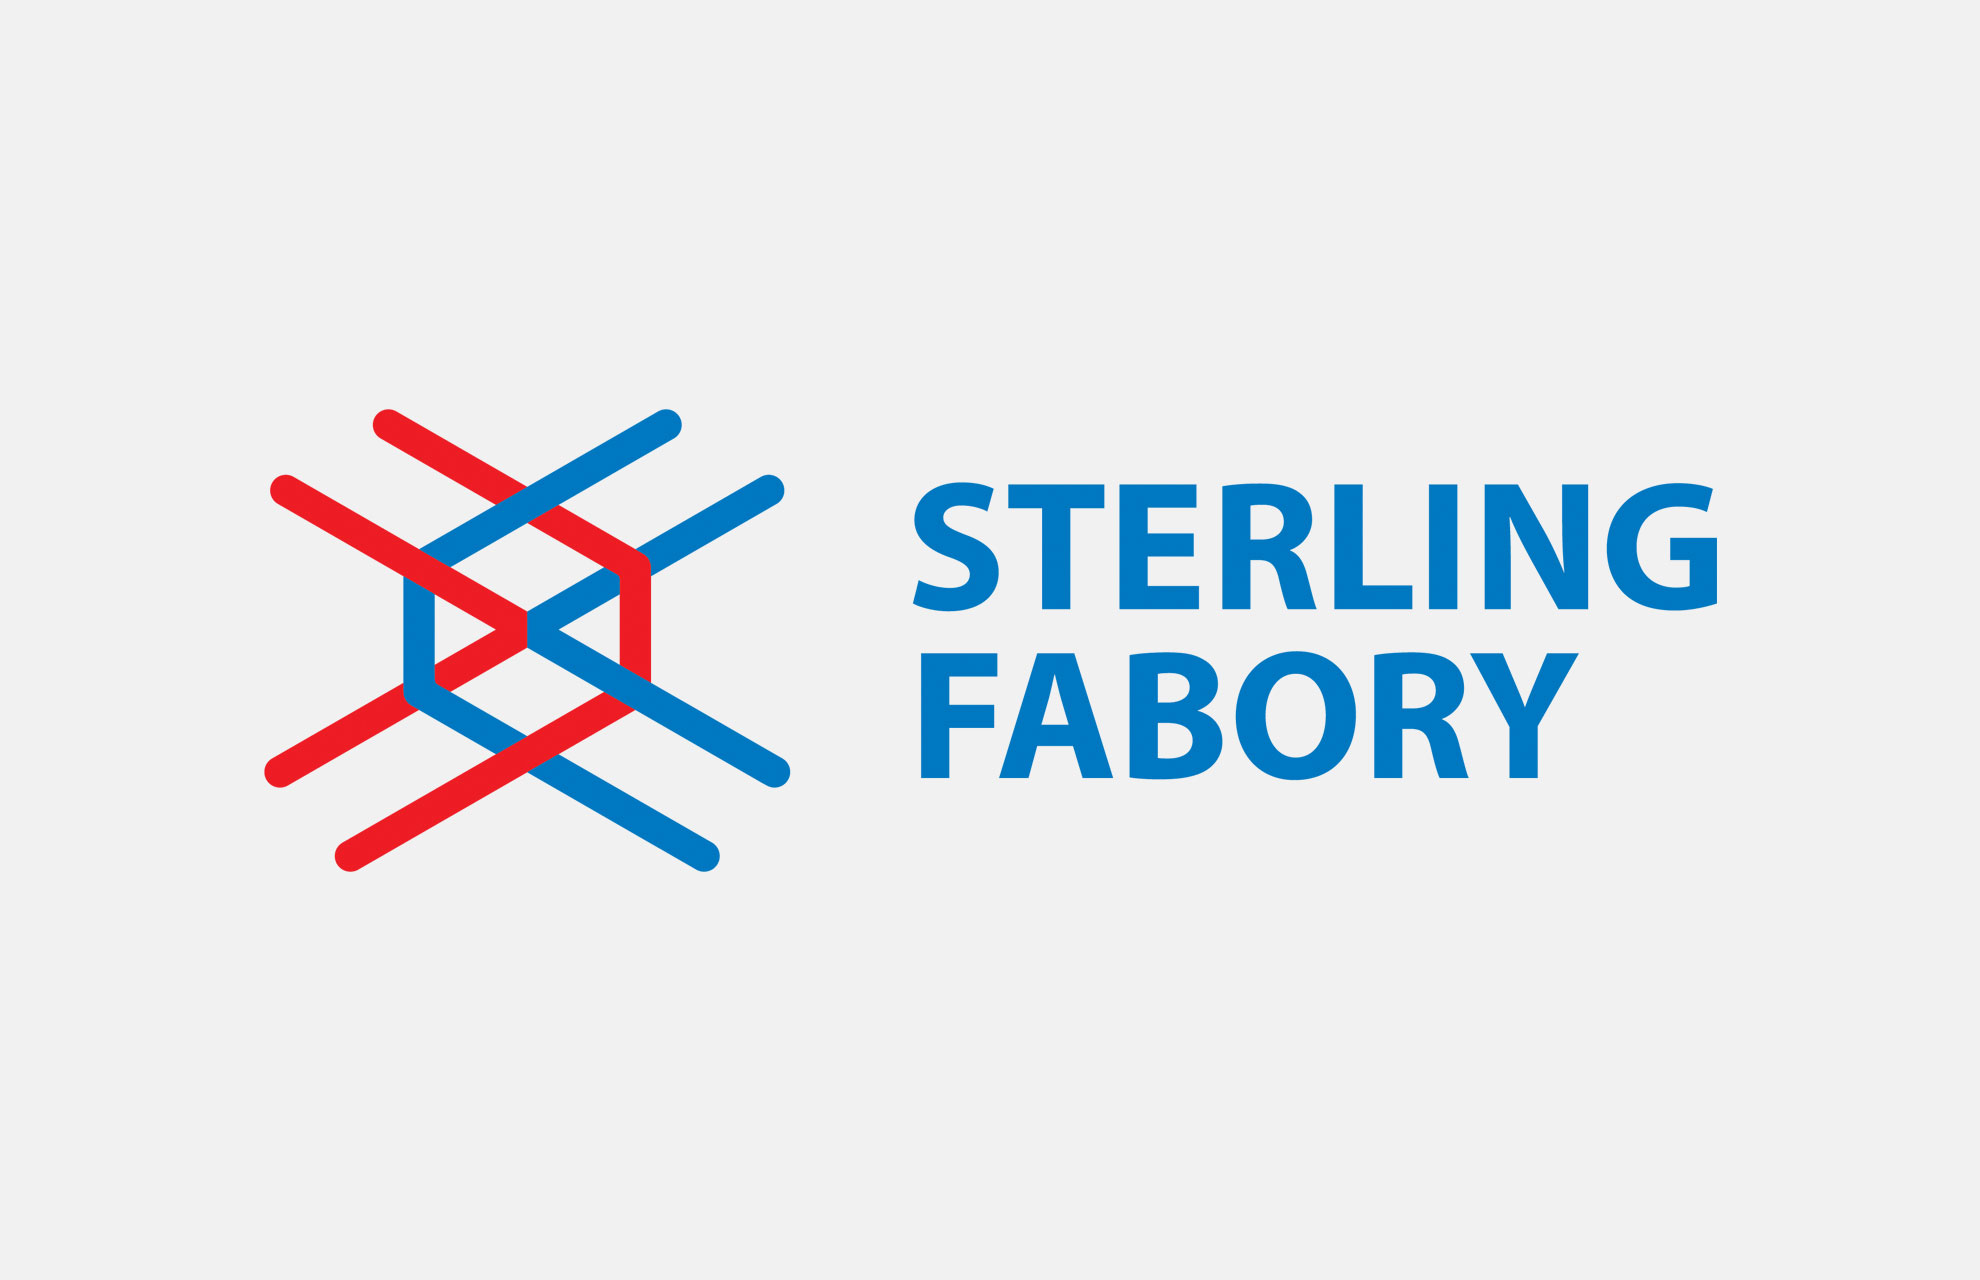 Sterling Fabory Identity